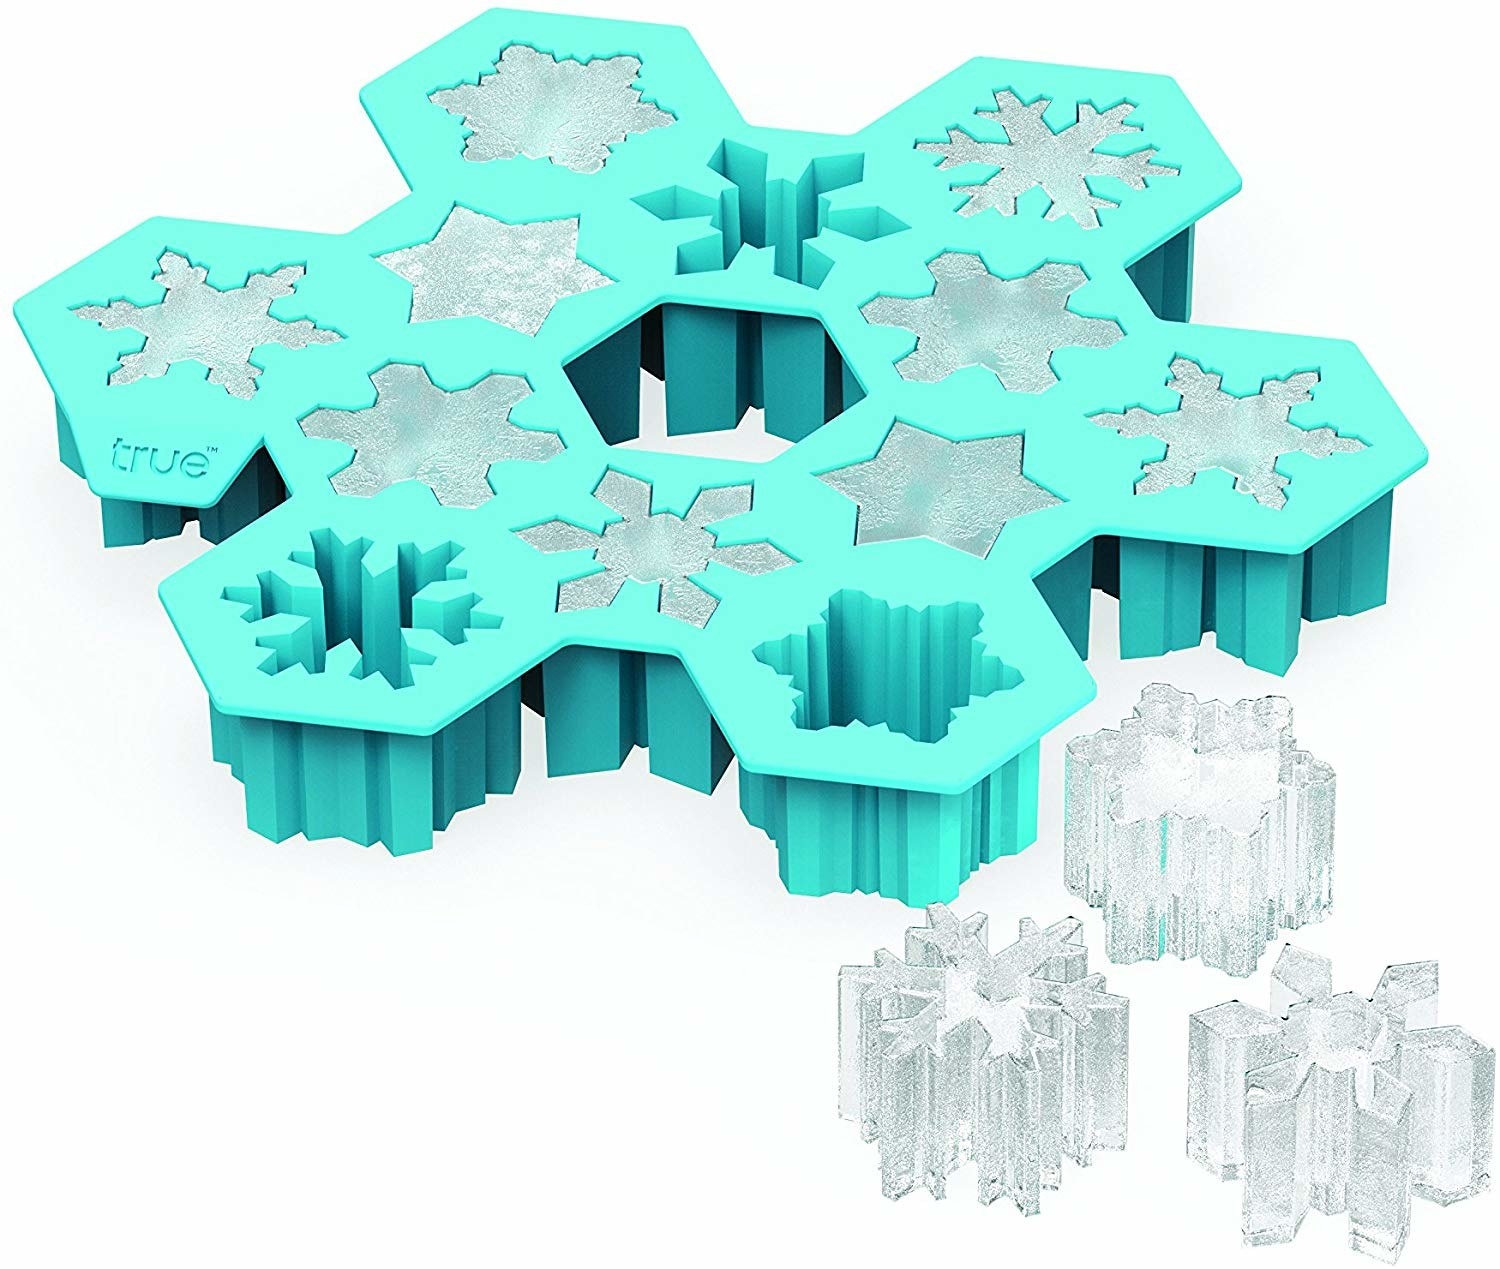 A snowflake-shaped ice cube tray producing small snowflake-shaped ice cubes